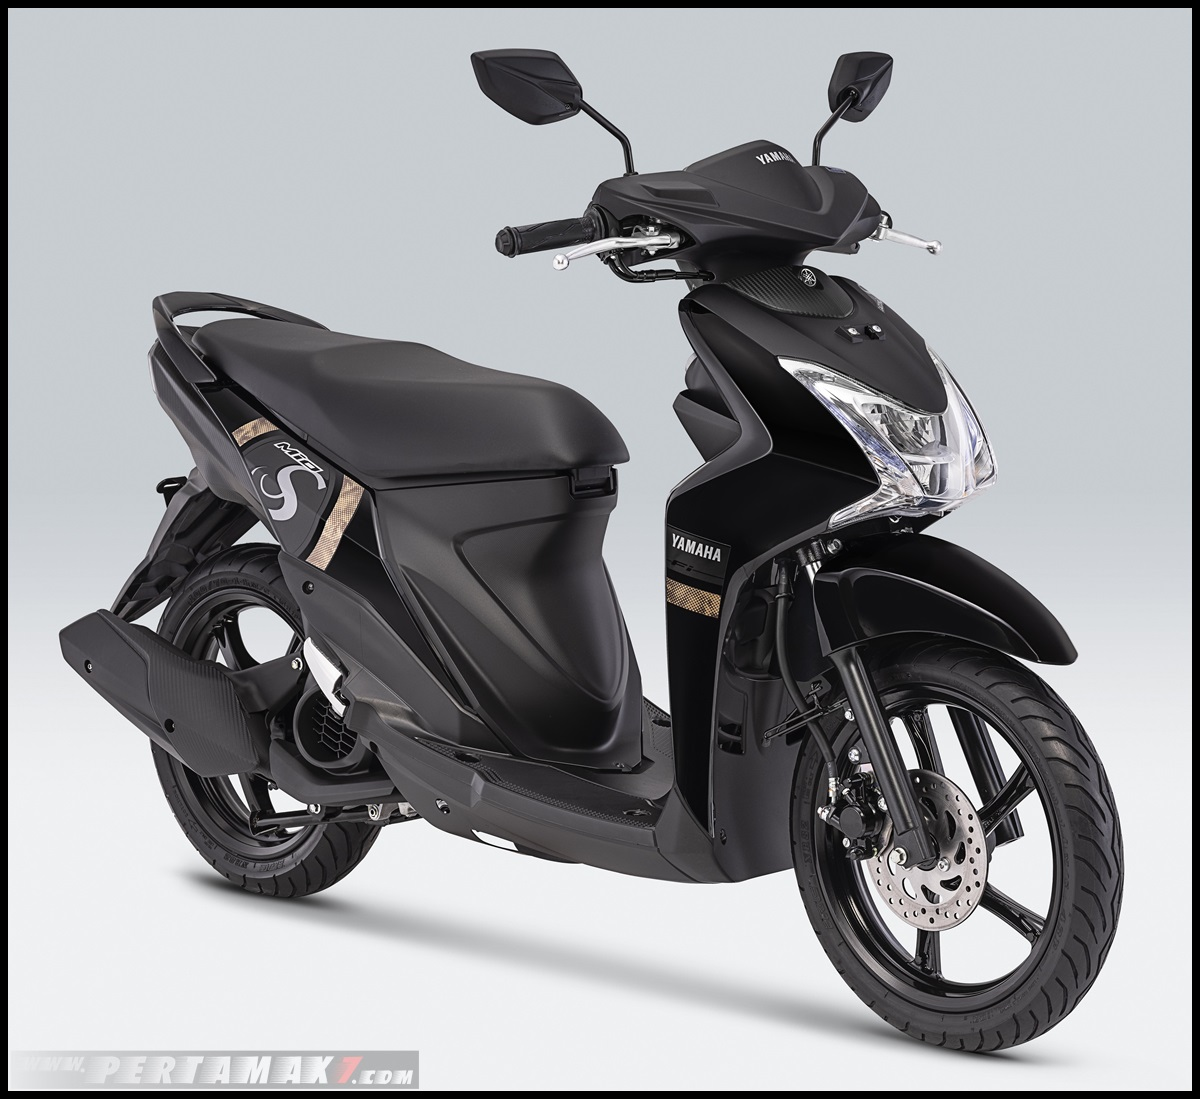 2019 Yamaha Mio S Warna Mighty Black